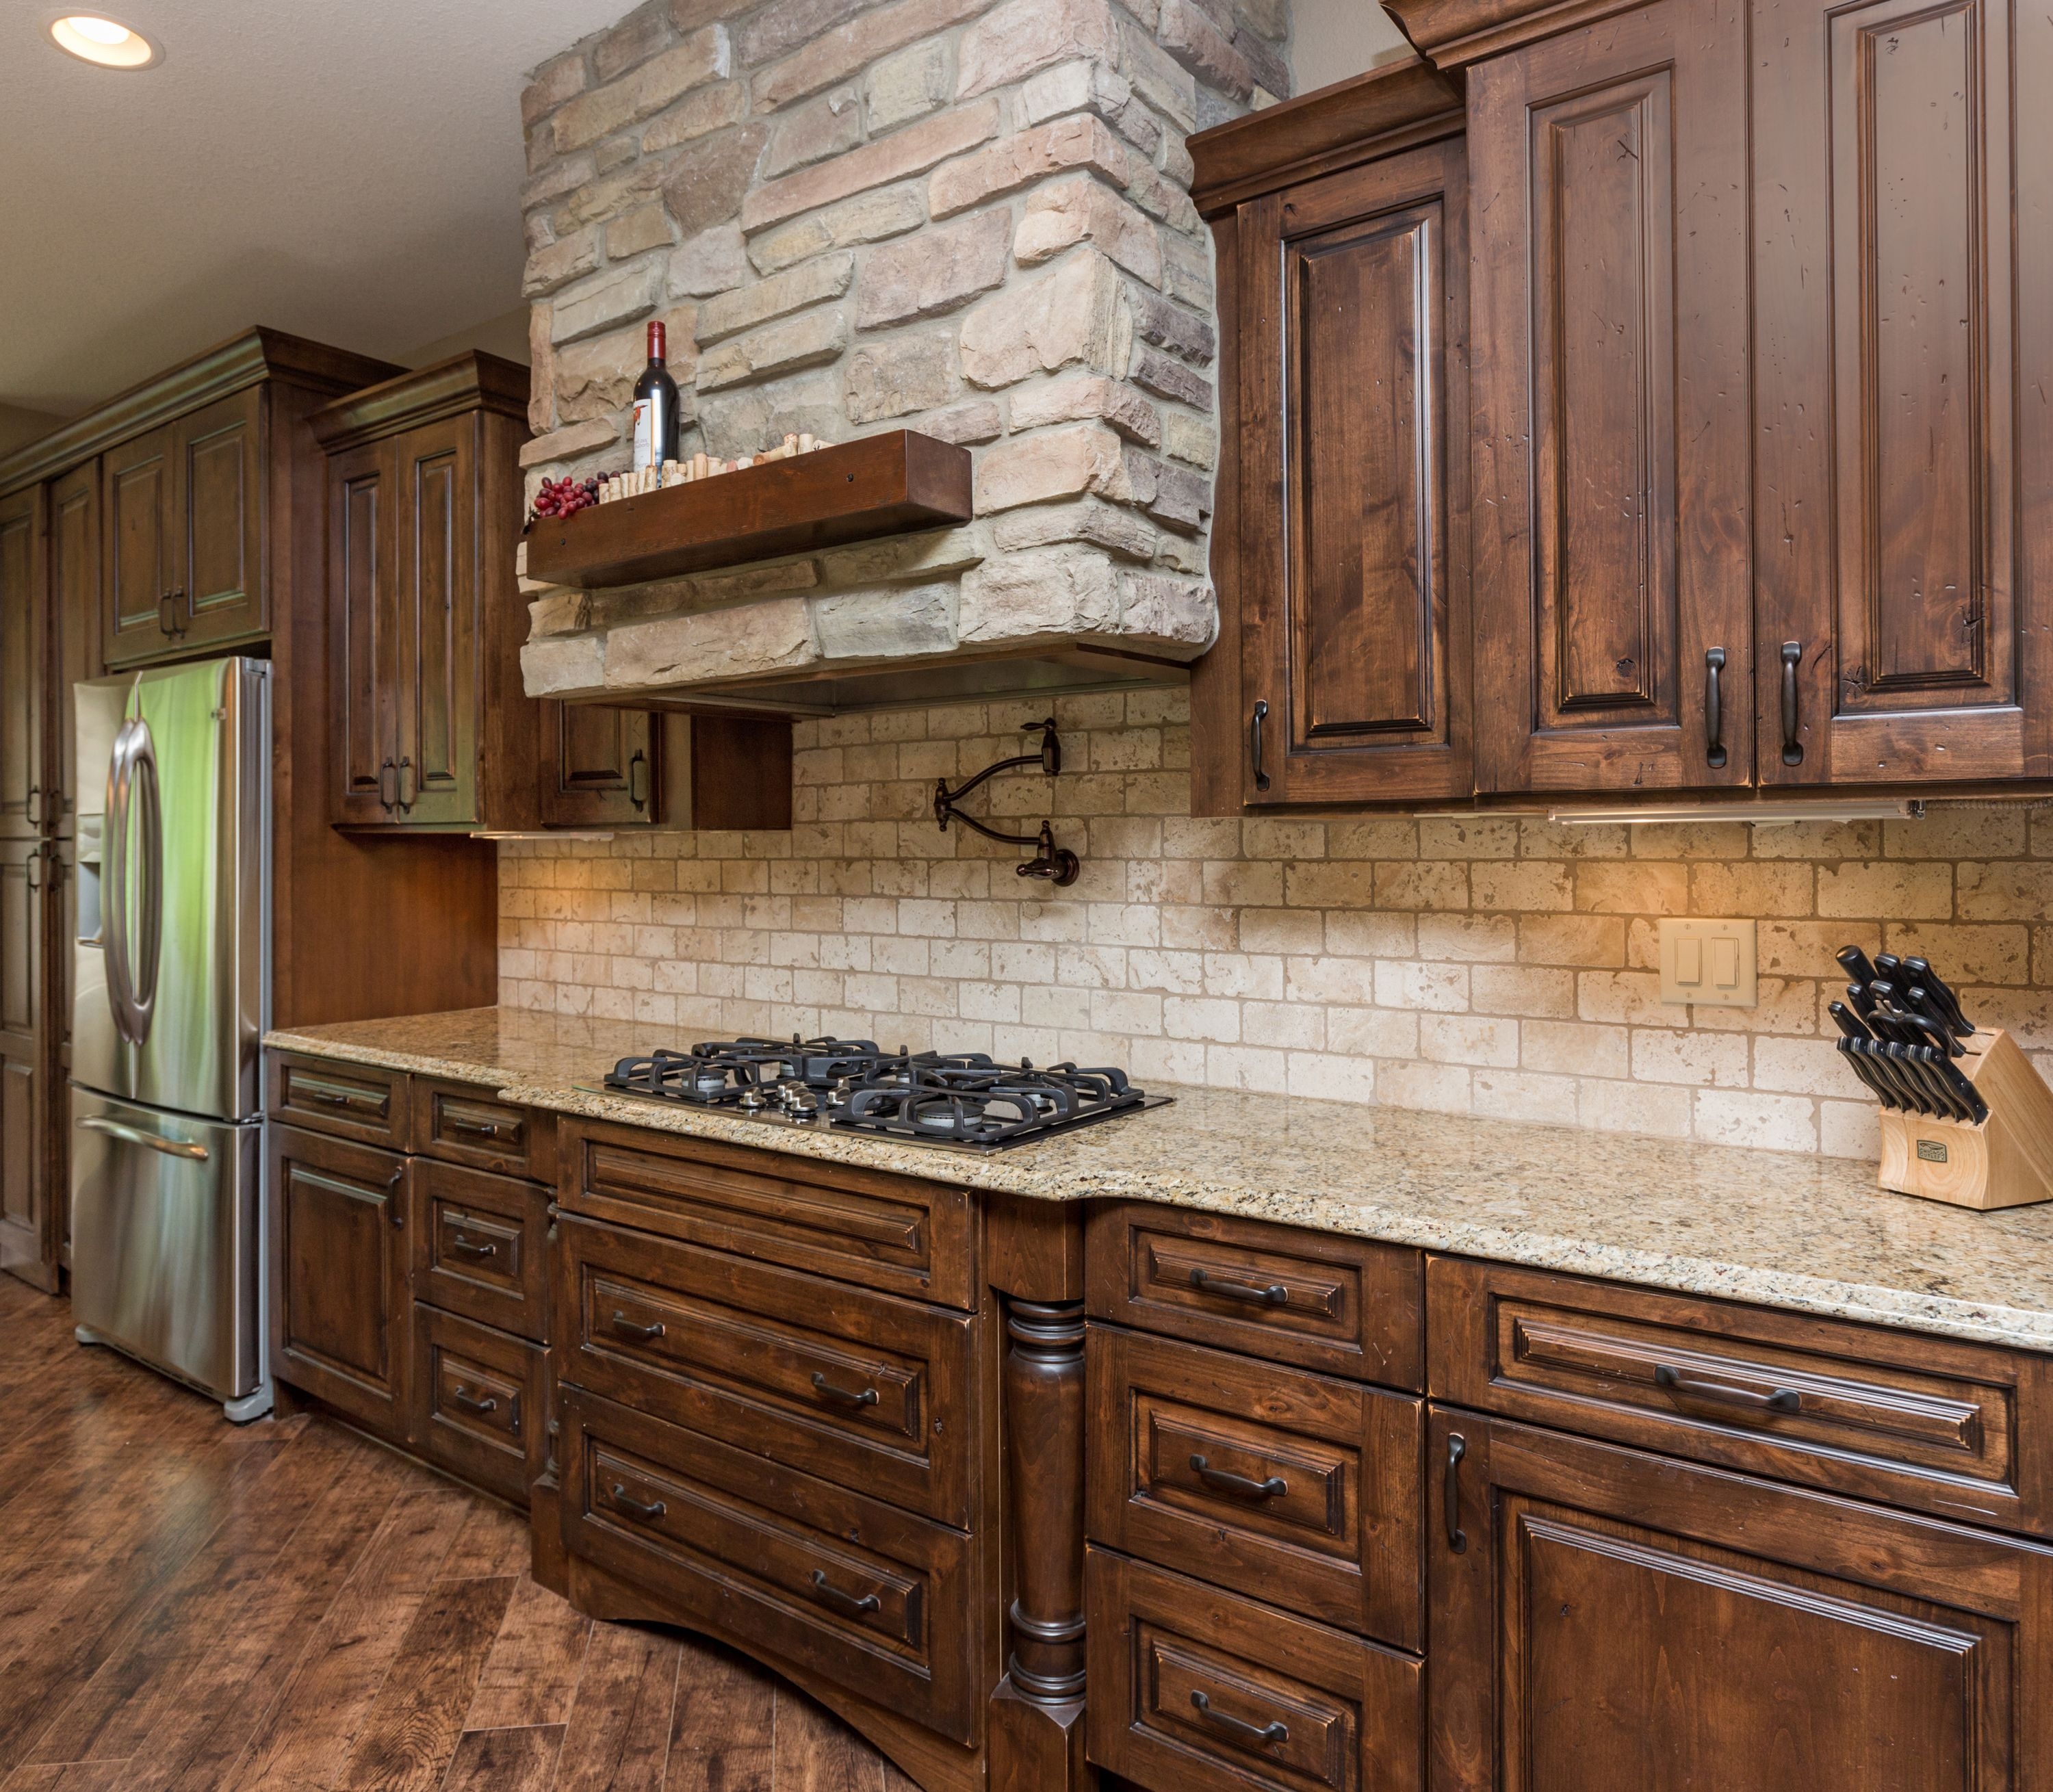 Travertine Floor White Cabinets Travertine Countertops: Stone Hood Vent With Wood Ledge, Travertine Backsplash, Distressed Stained Cabinets